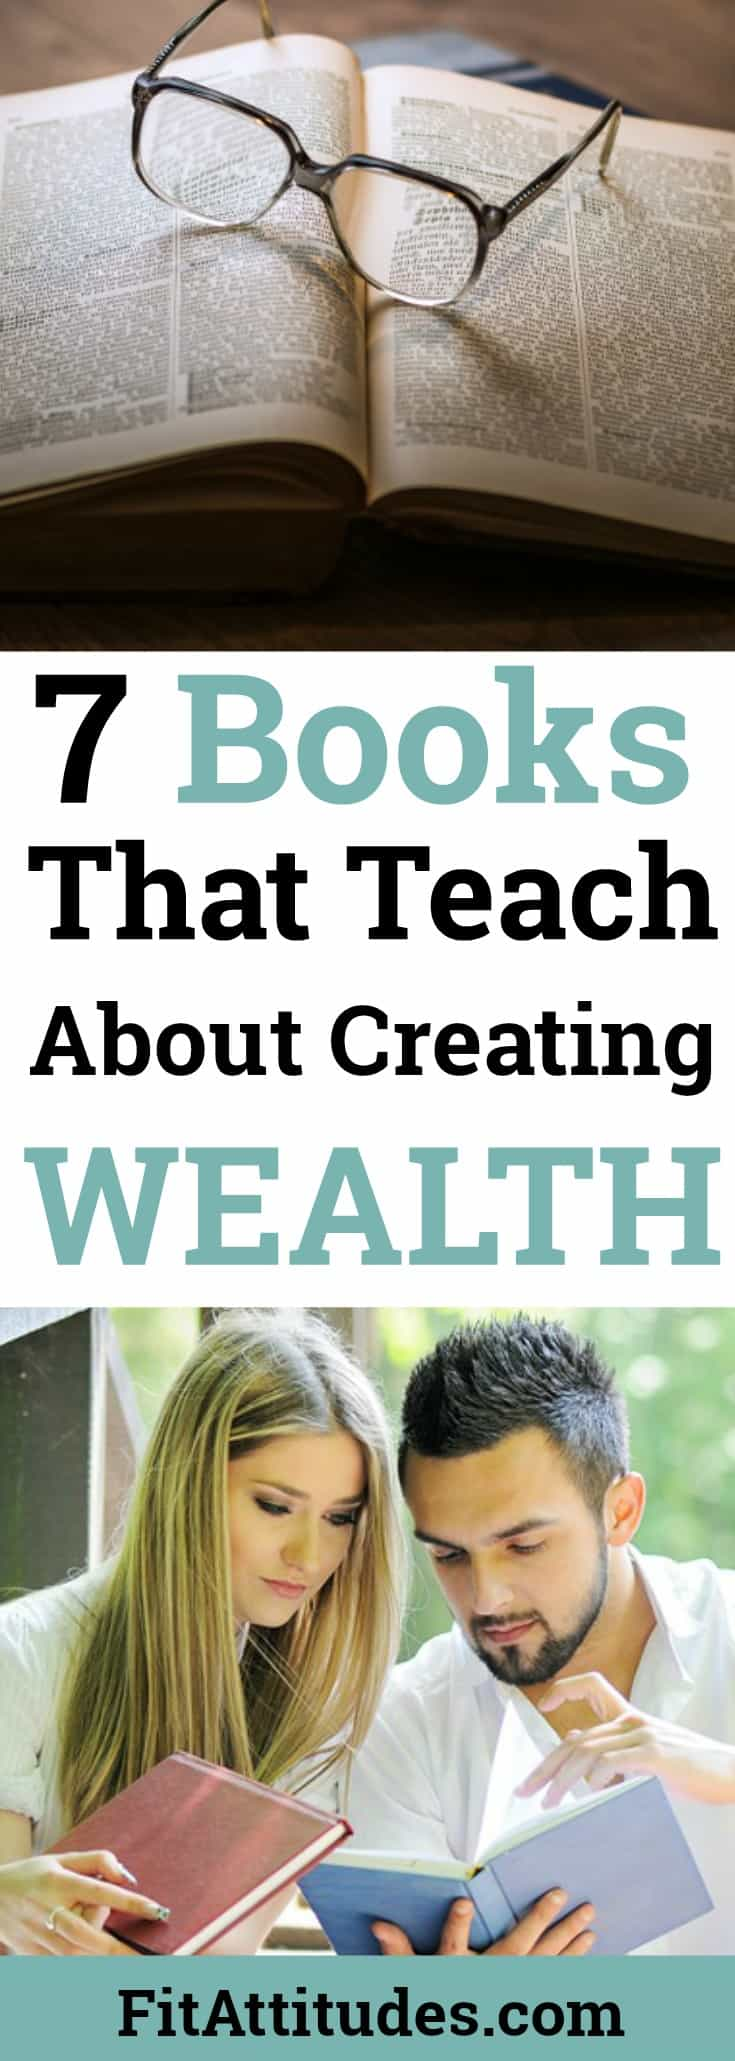 Interested in financial planning for your future? These popular books will help you learn to build wealth.